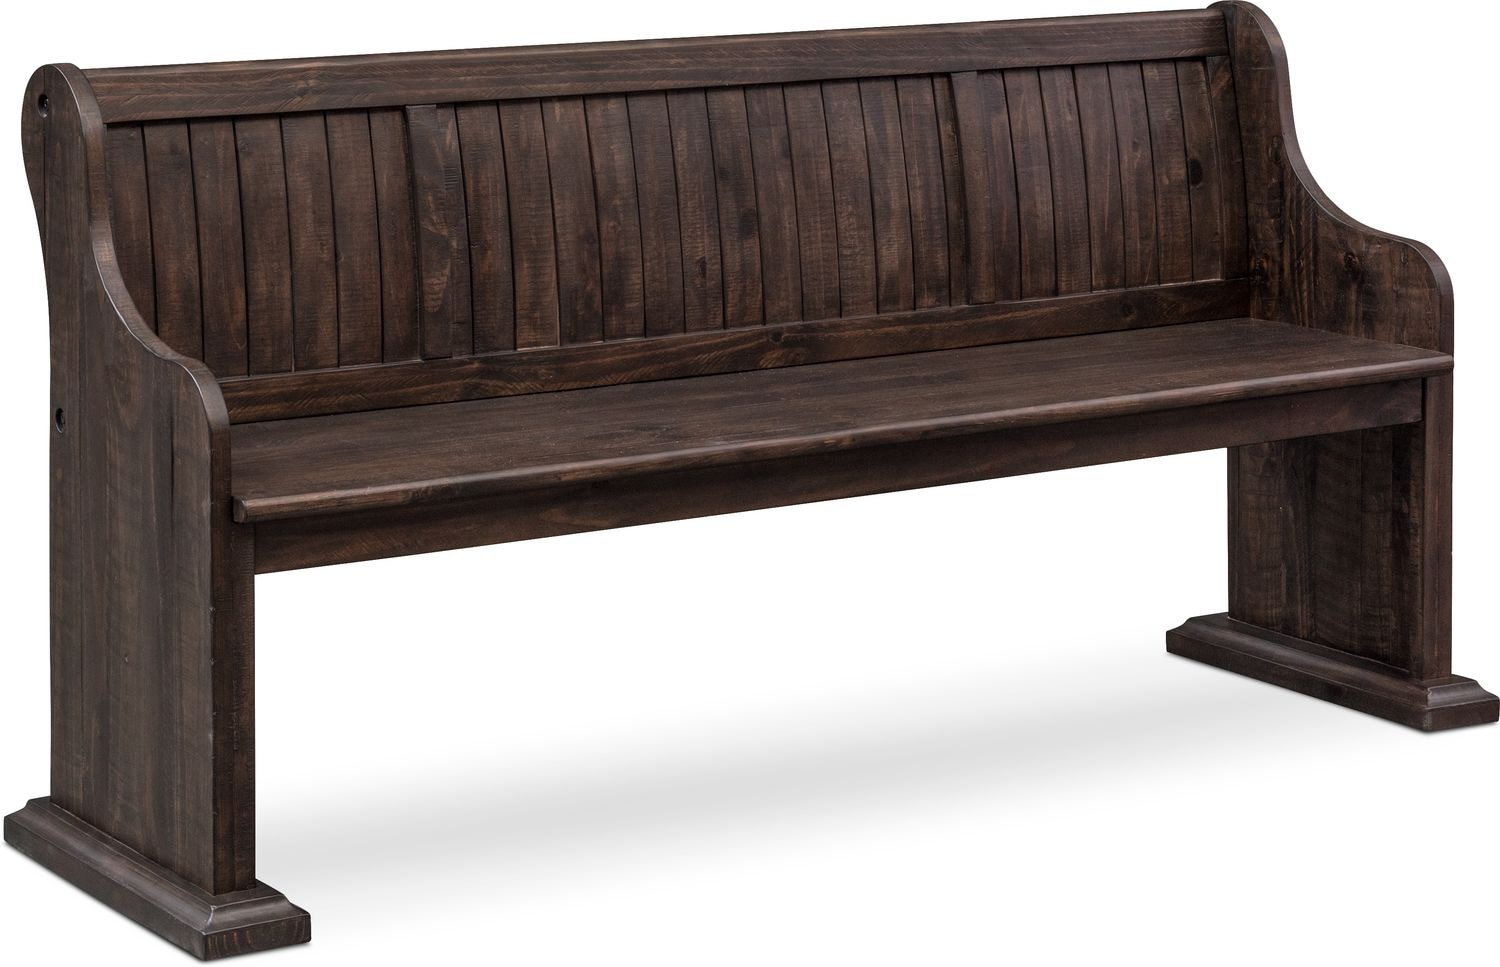 Dining Room Furniture - Charthouse Dining Bench